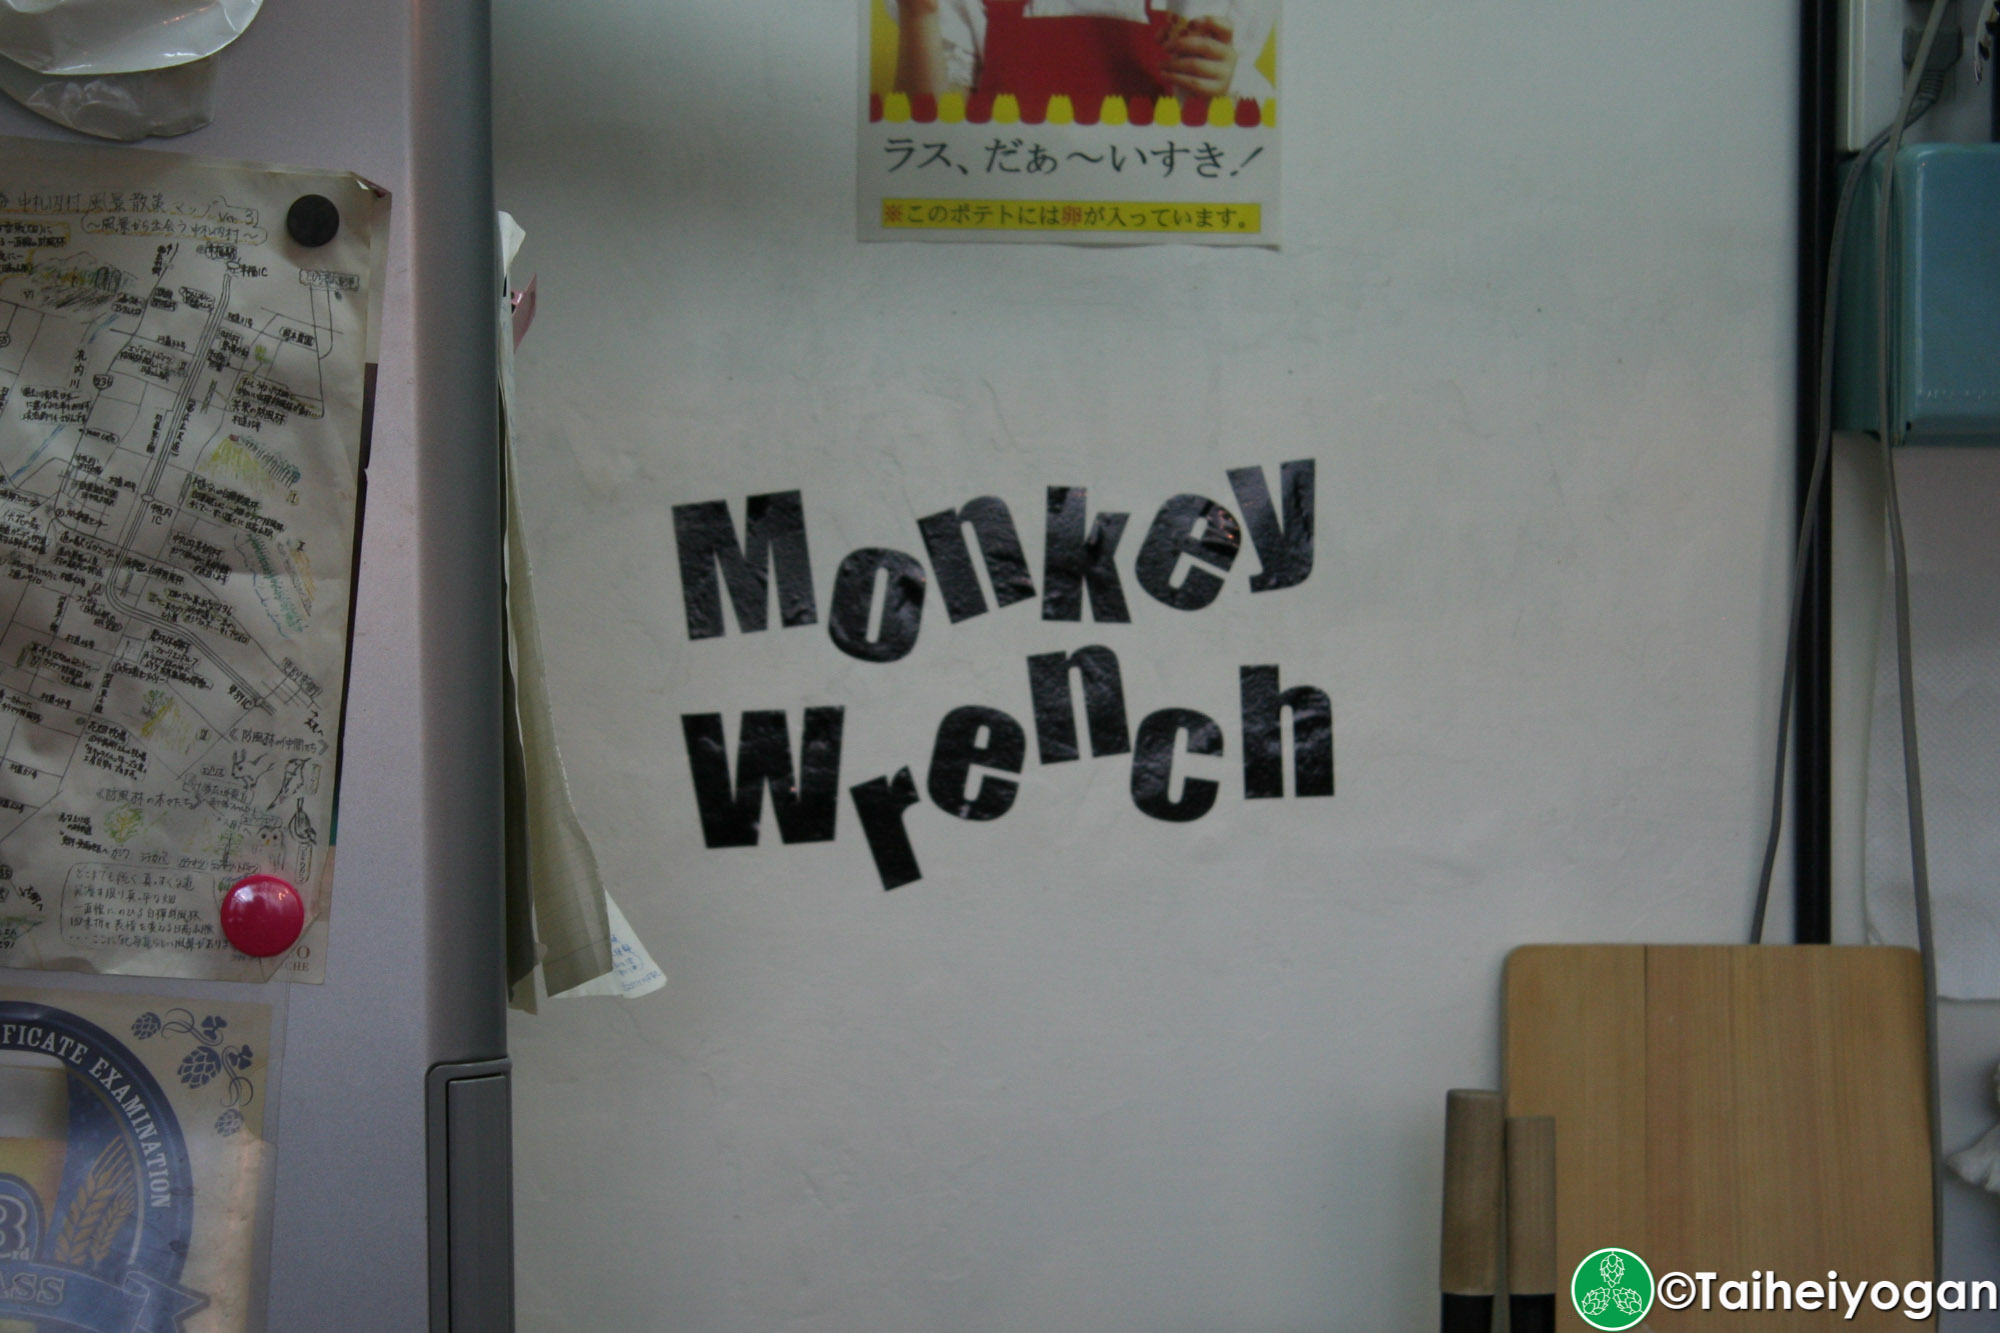 Monkey Wrench - Interior - Sign